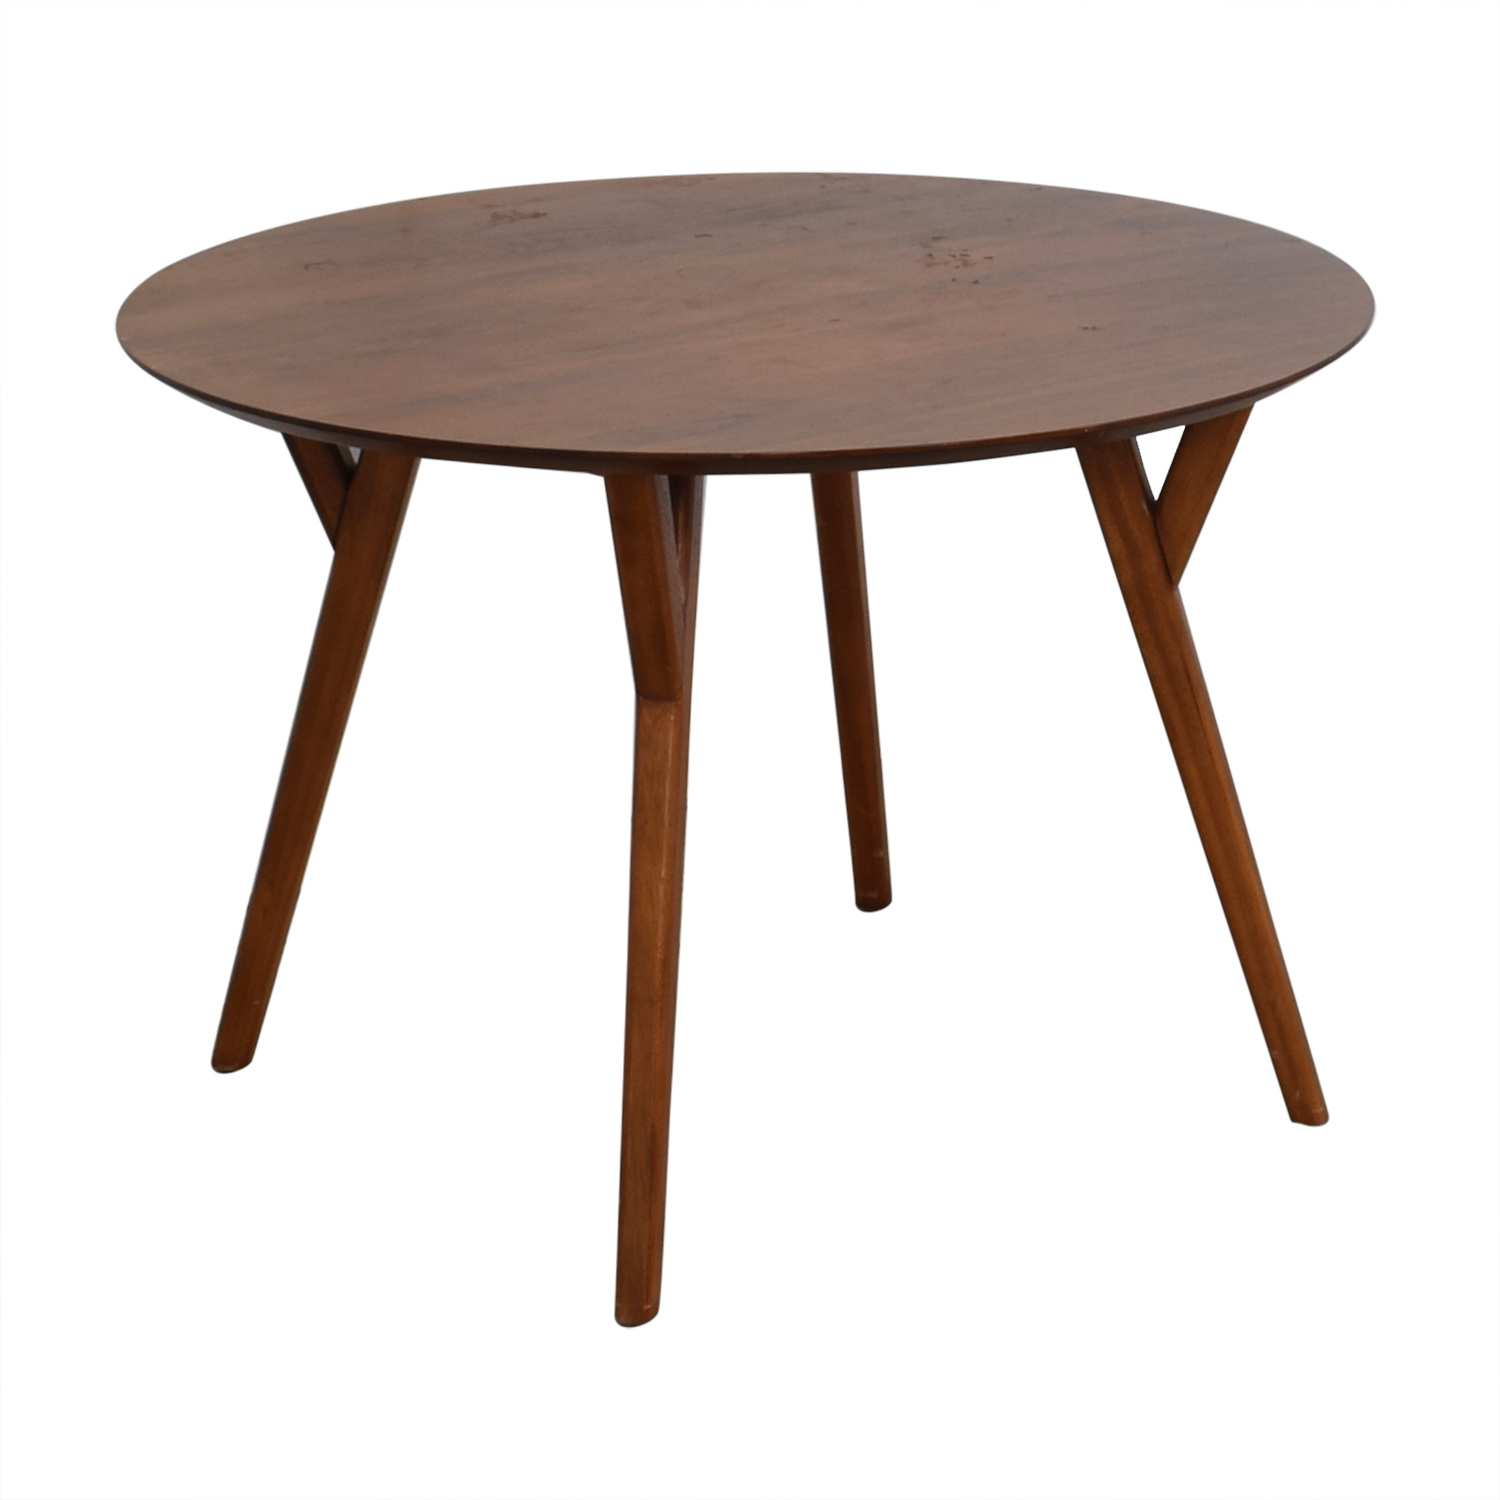 69% Off – West Elm West Elm Round Dining Table / Tables Pertaining To Most Up To Date West Dining Tables (Image 4 of 25)